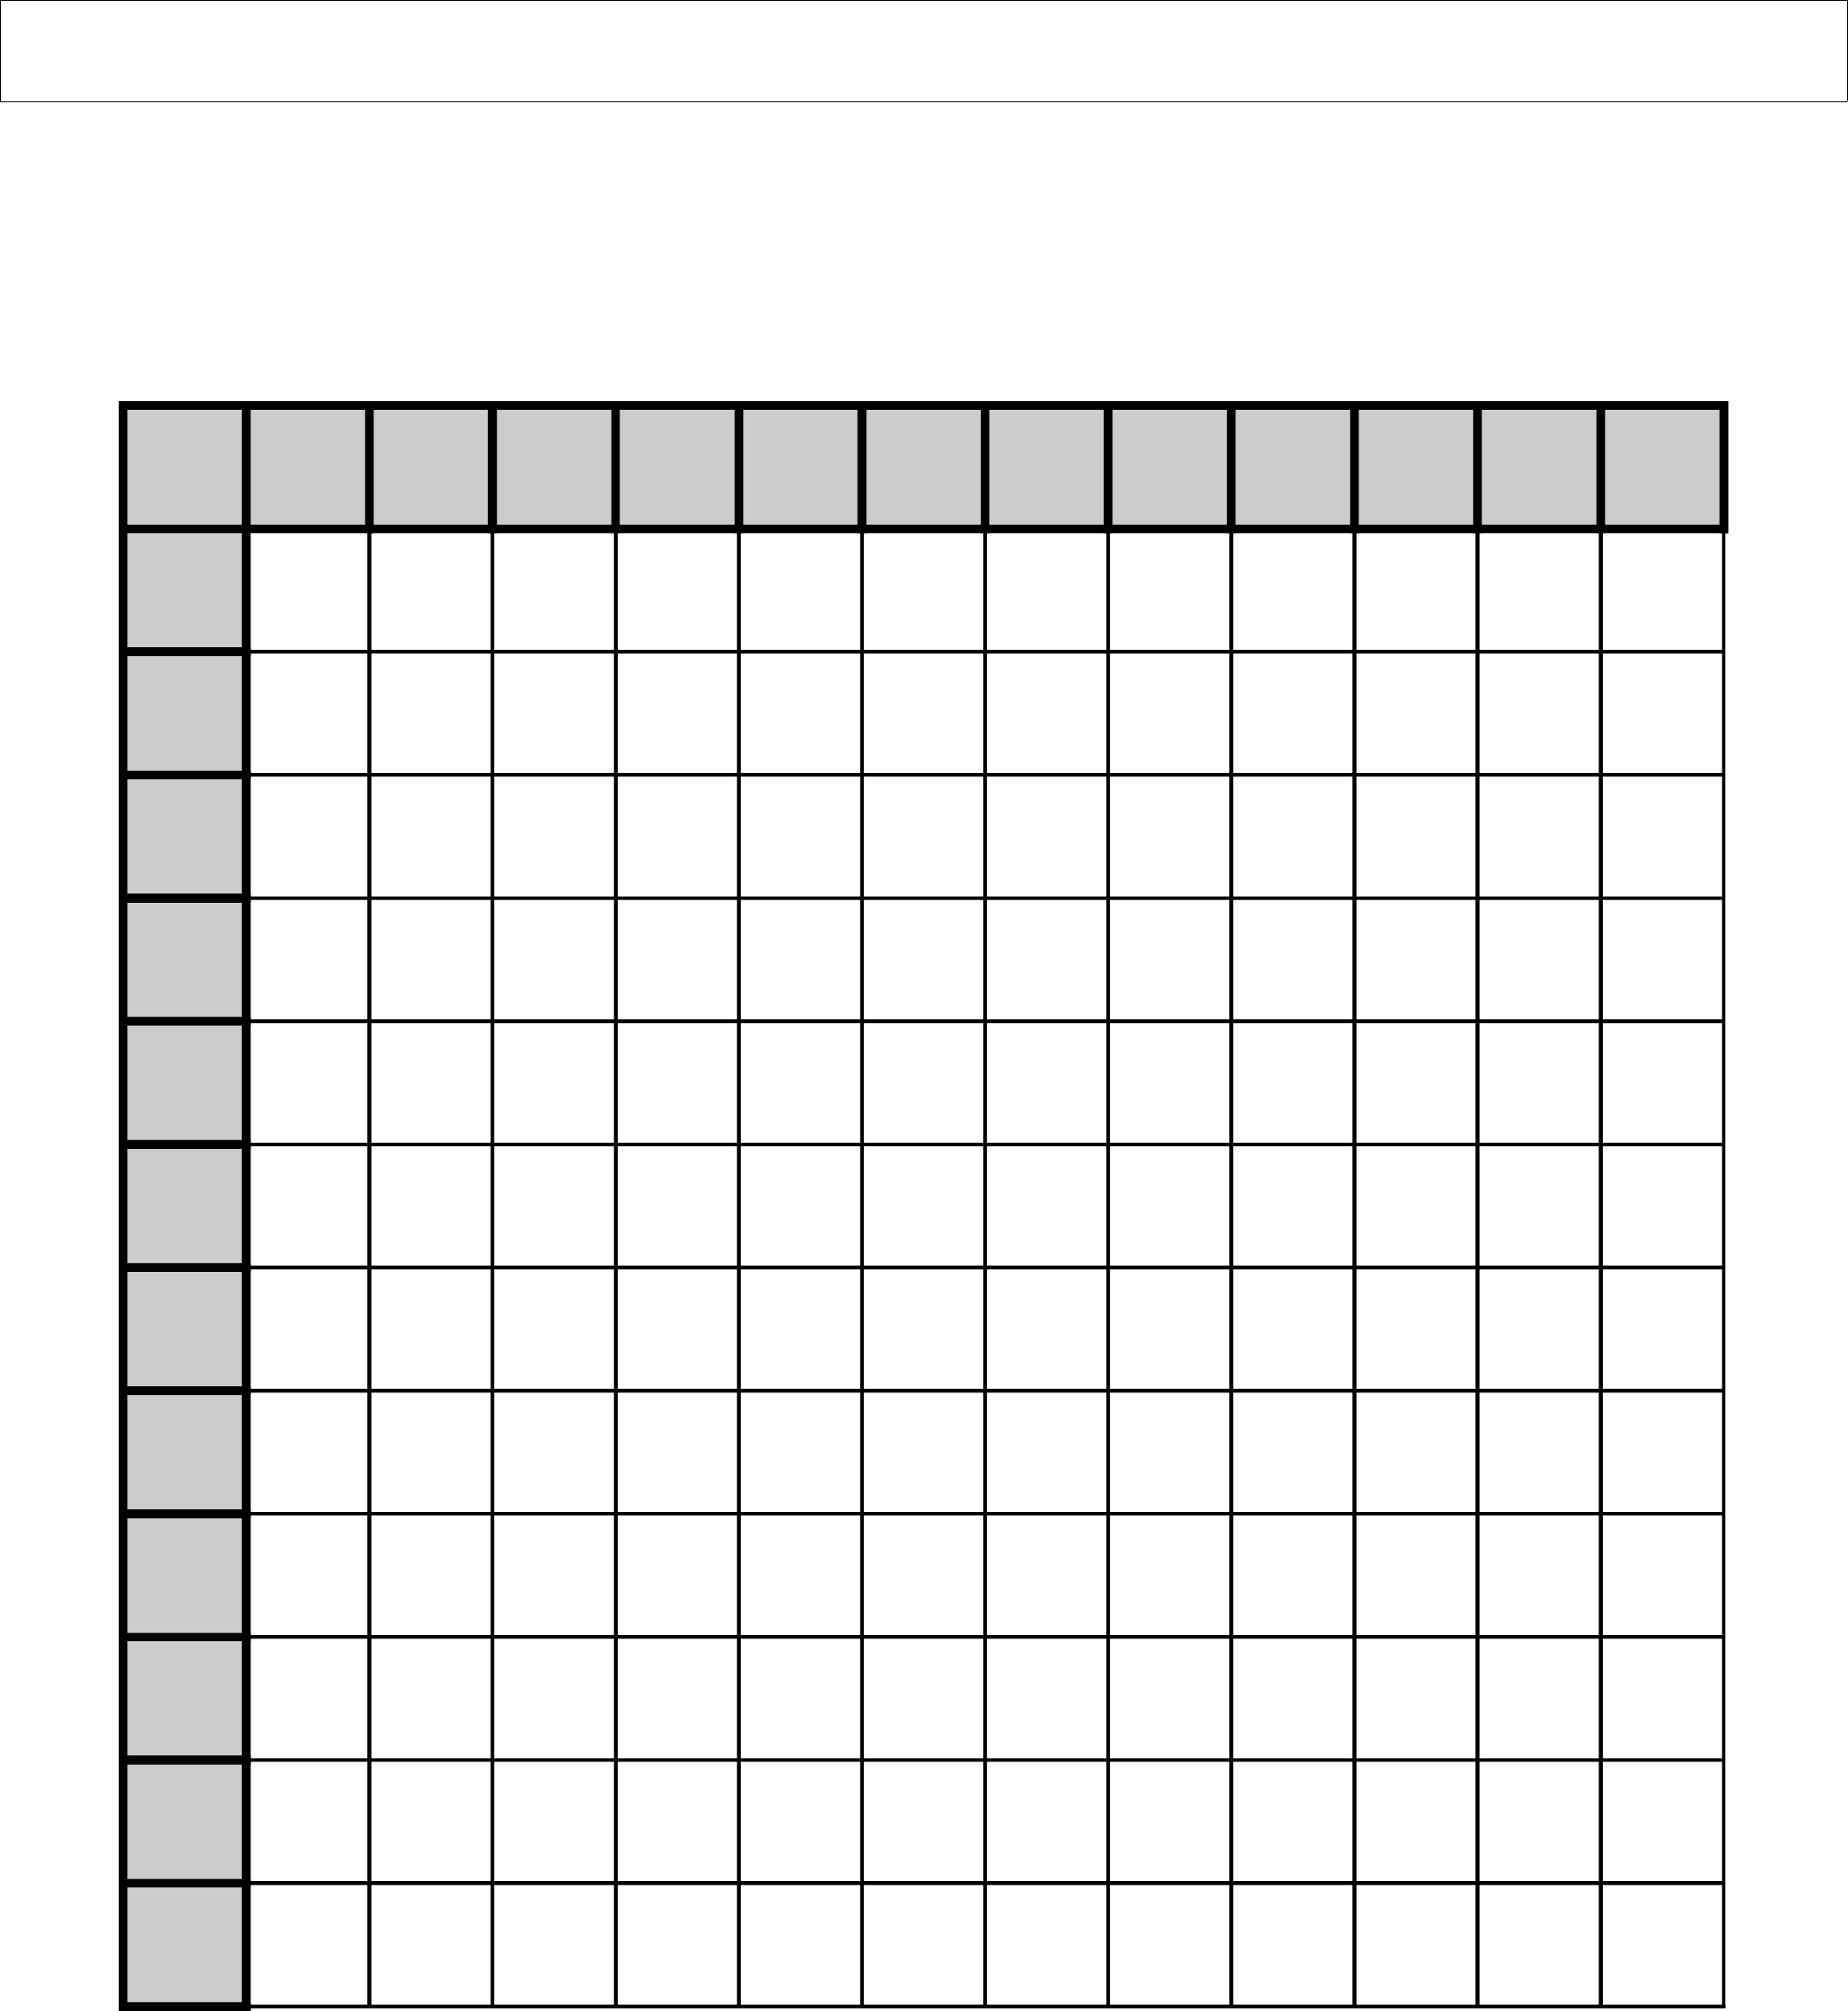 math worksheet : 1 filled and 1 blank multiplication table to 144 d free download : Blank Multiplication Table Worksheet